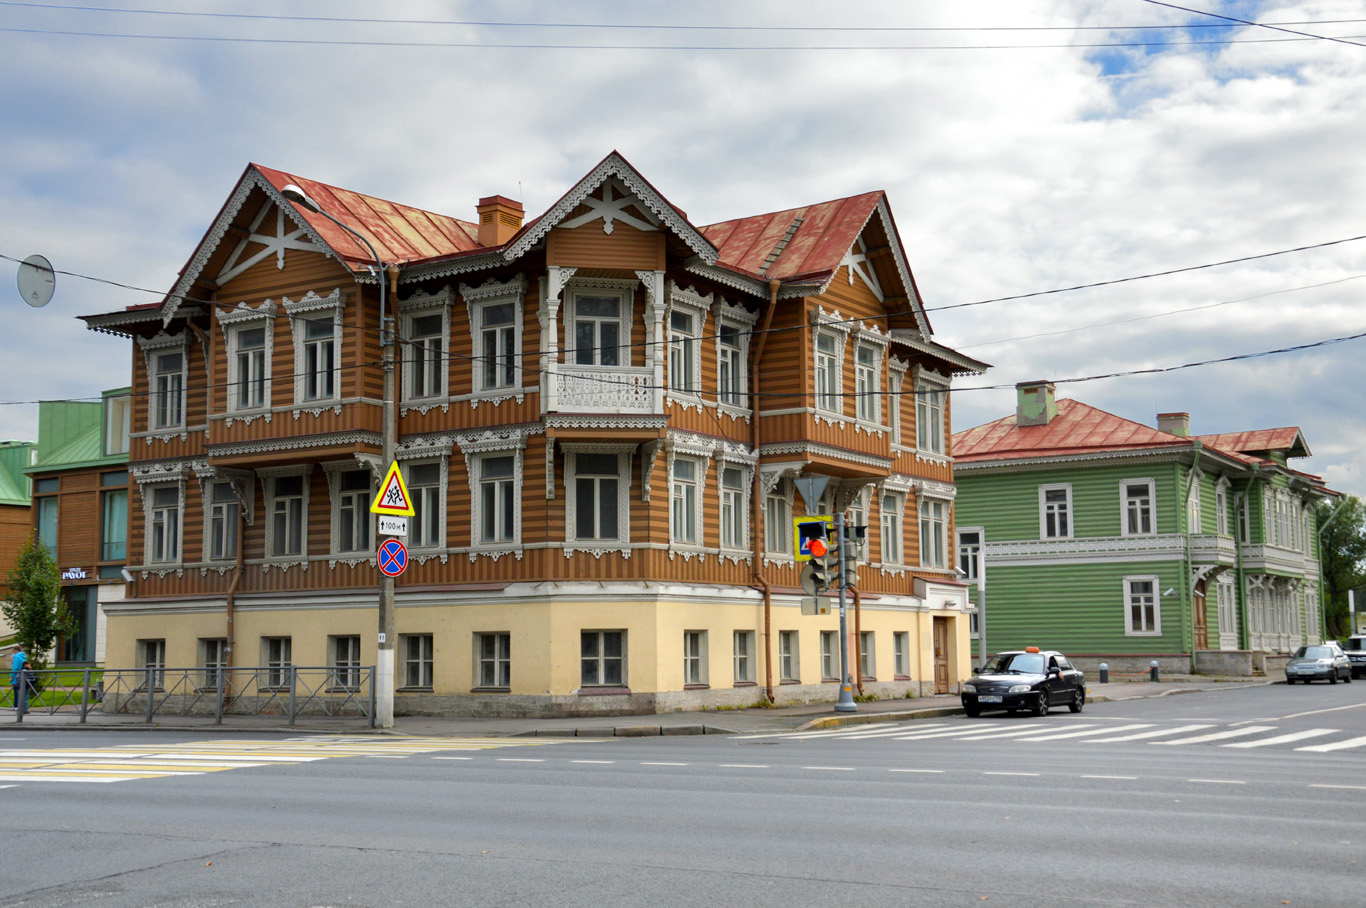 St. Petersburg outside of city center - wooden architecture